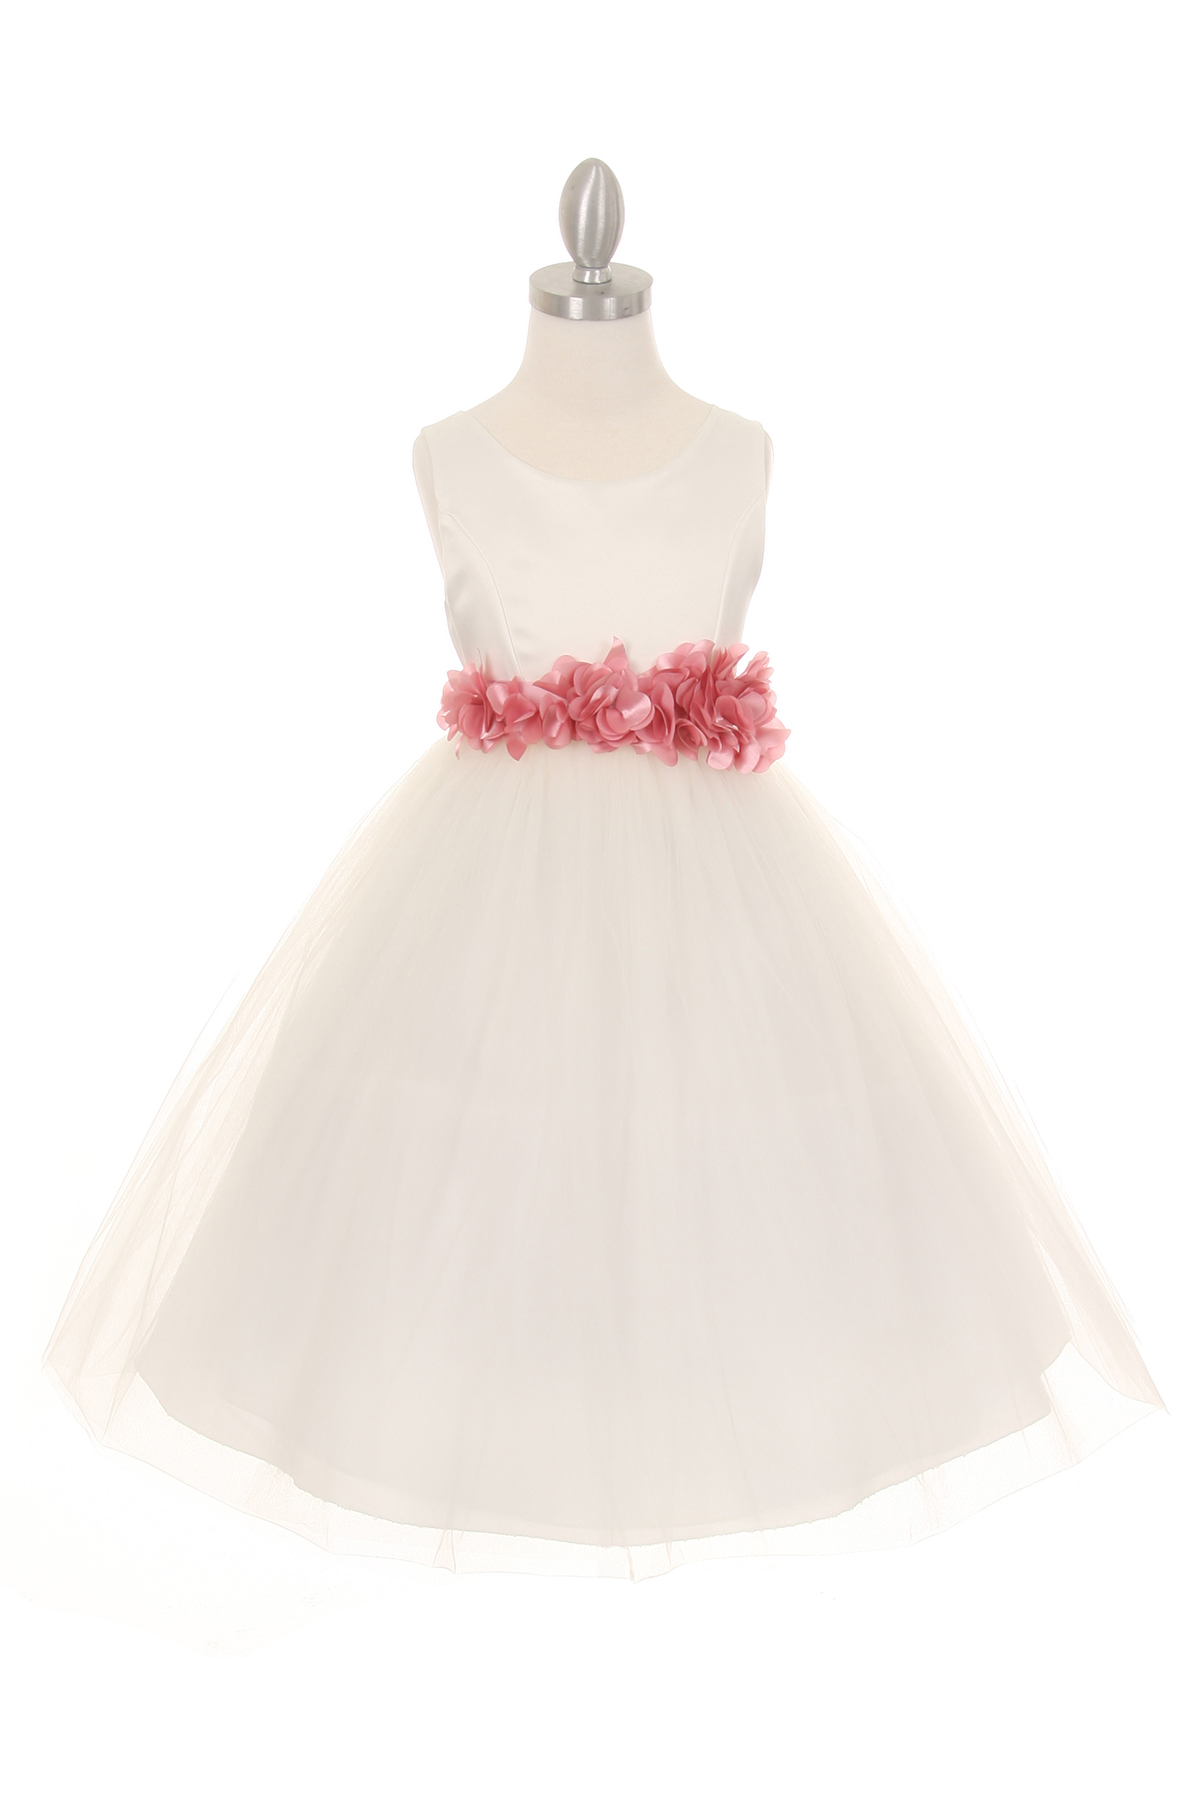 ivory dress with dusty rose flower sash